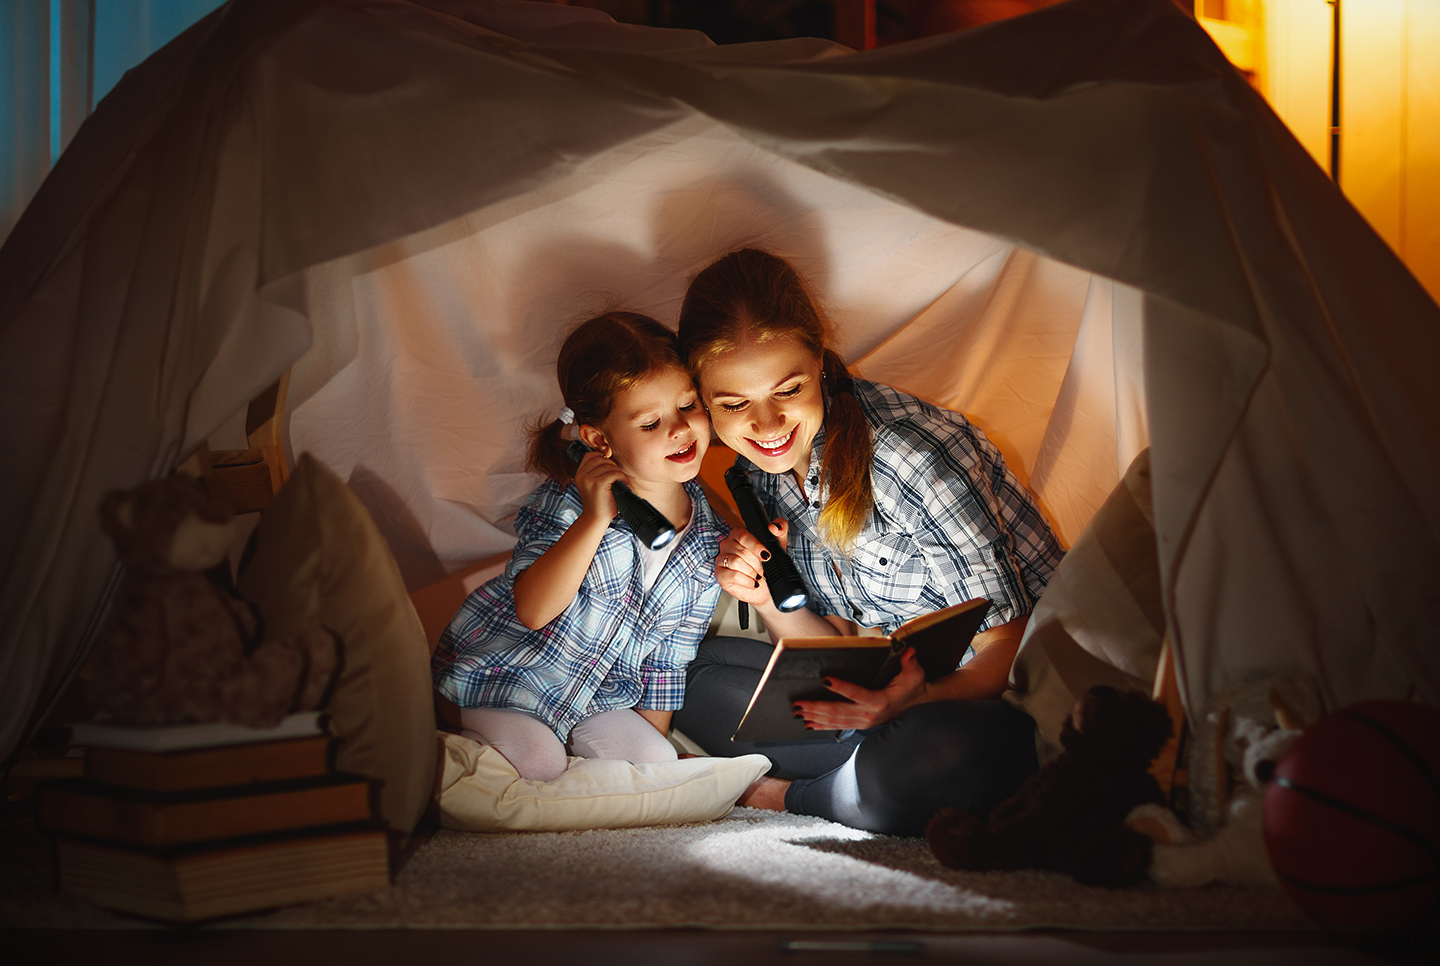 A woman and young girl use their Smartech Everbright 250 Lumen Ultra Bright CREE XPG LED Tactical Flashlights to illuminate the pages of their bedtime storybook.